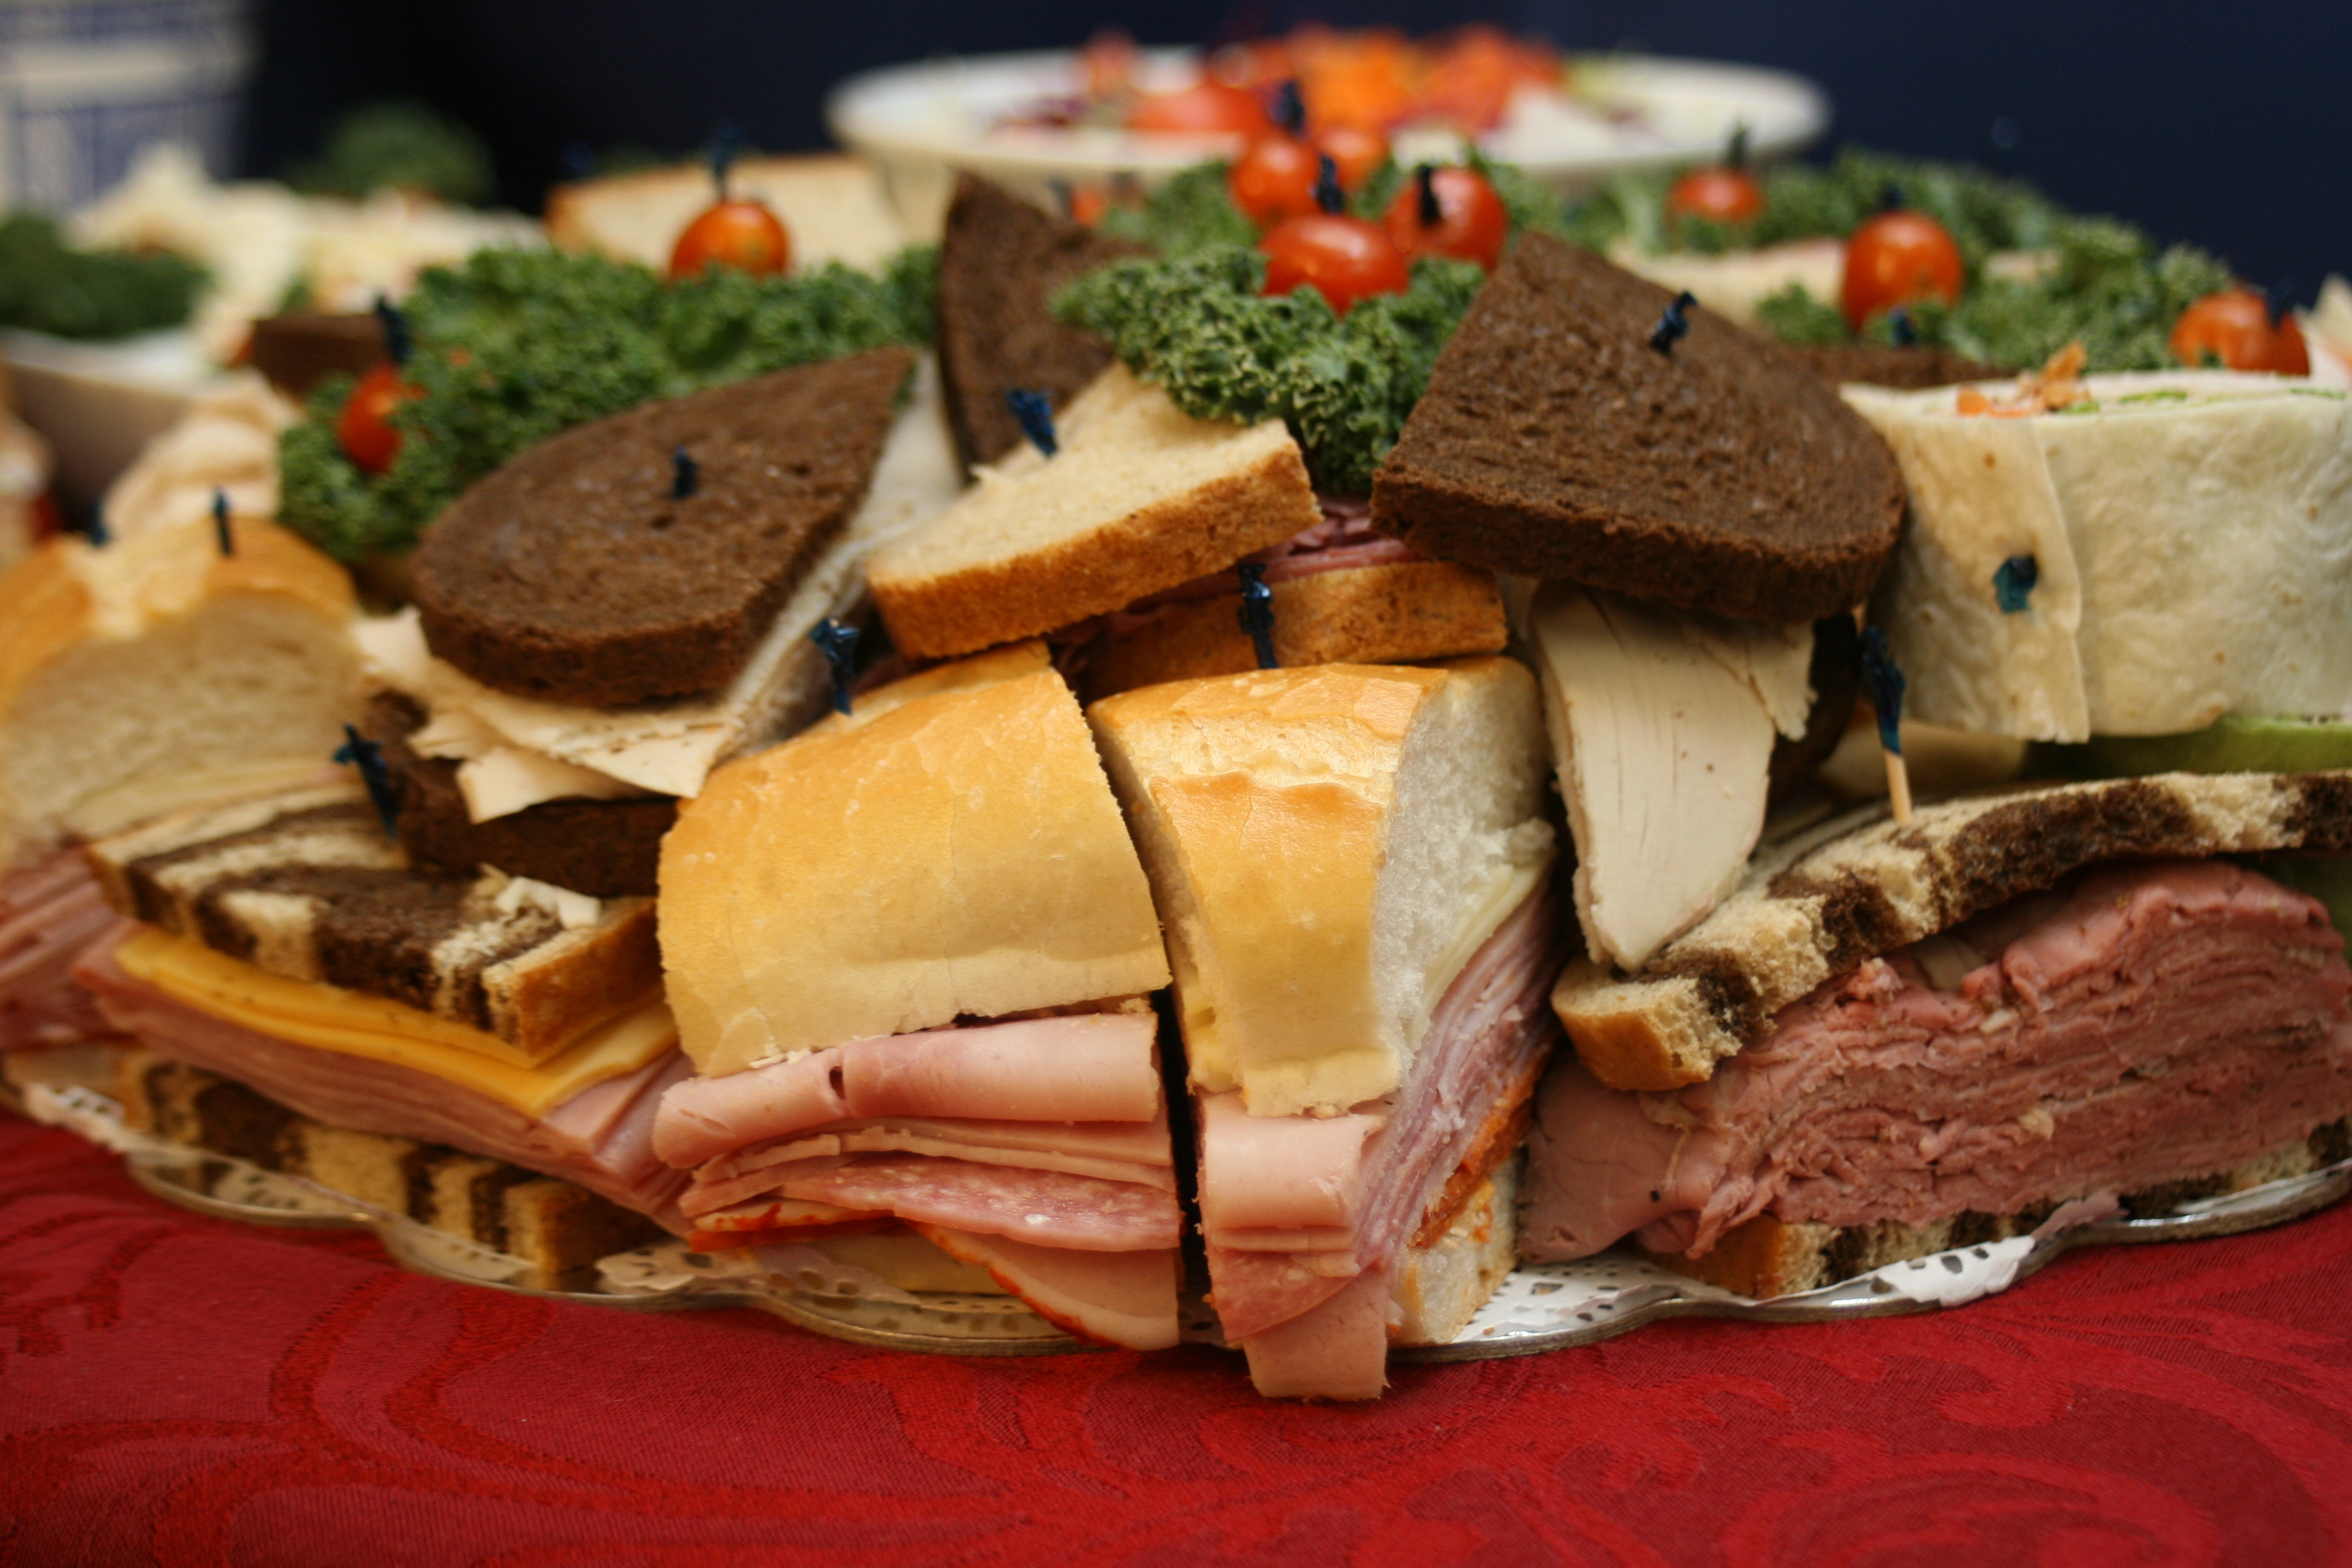 Gourmet Sandwich Platters loaded with tasty wraps, mini heros and sandwichs